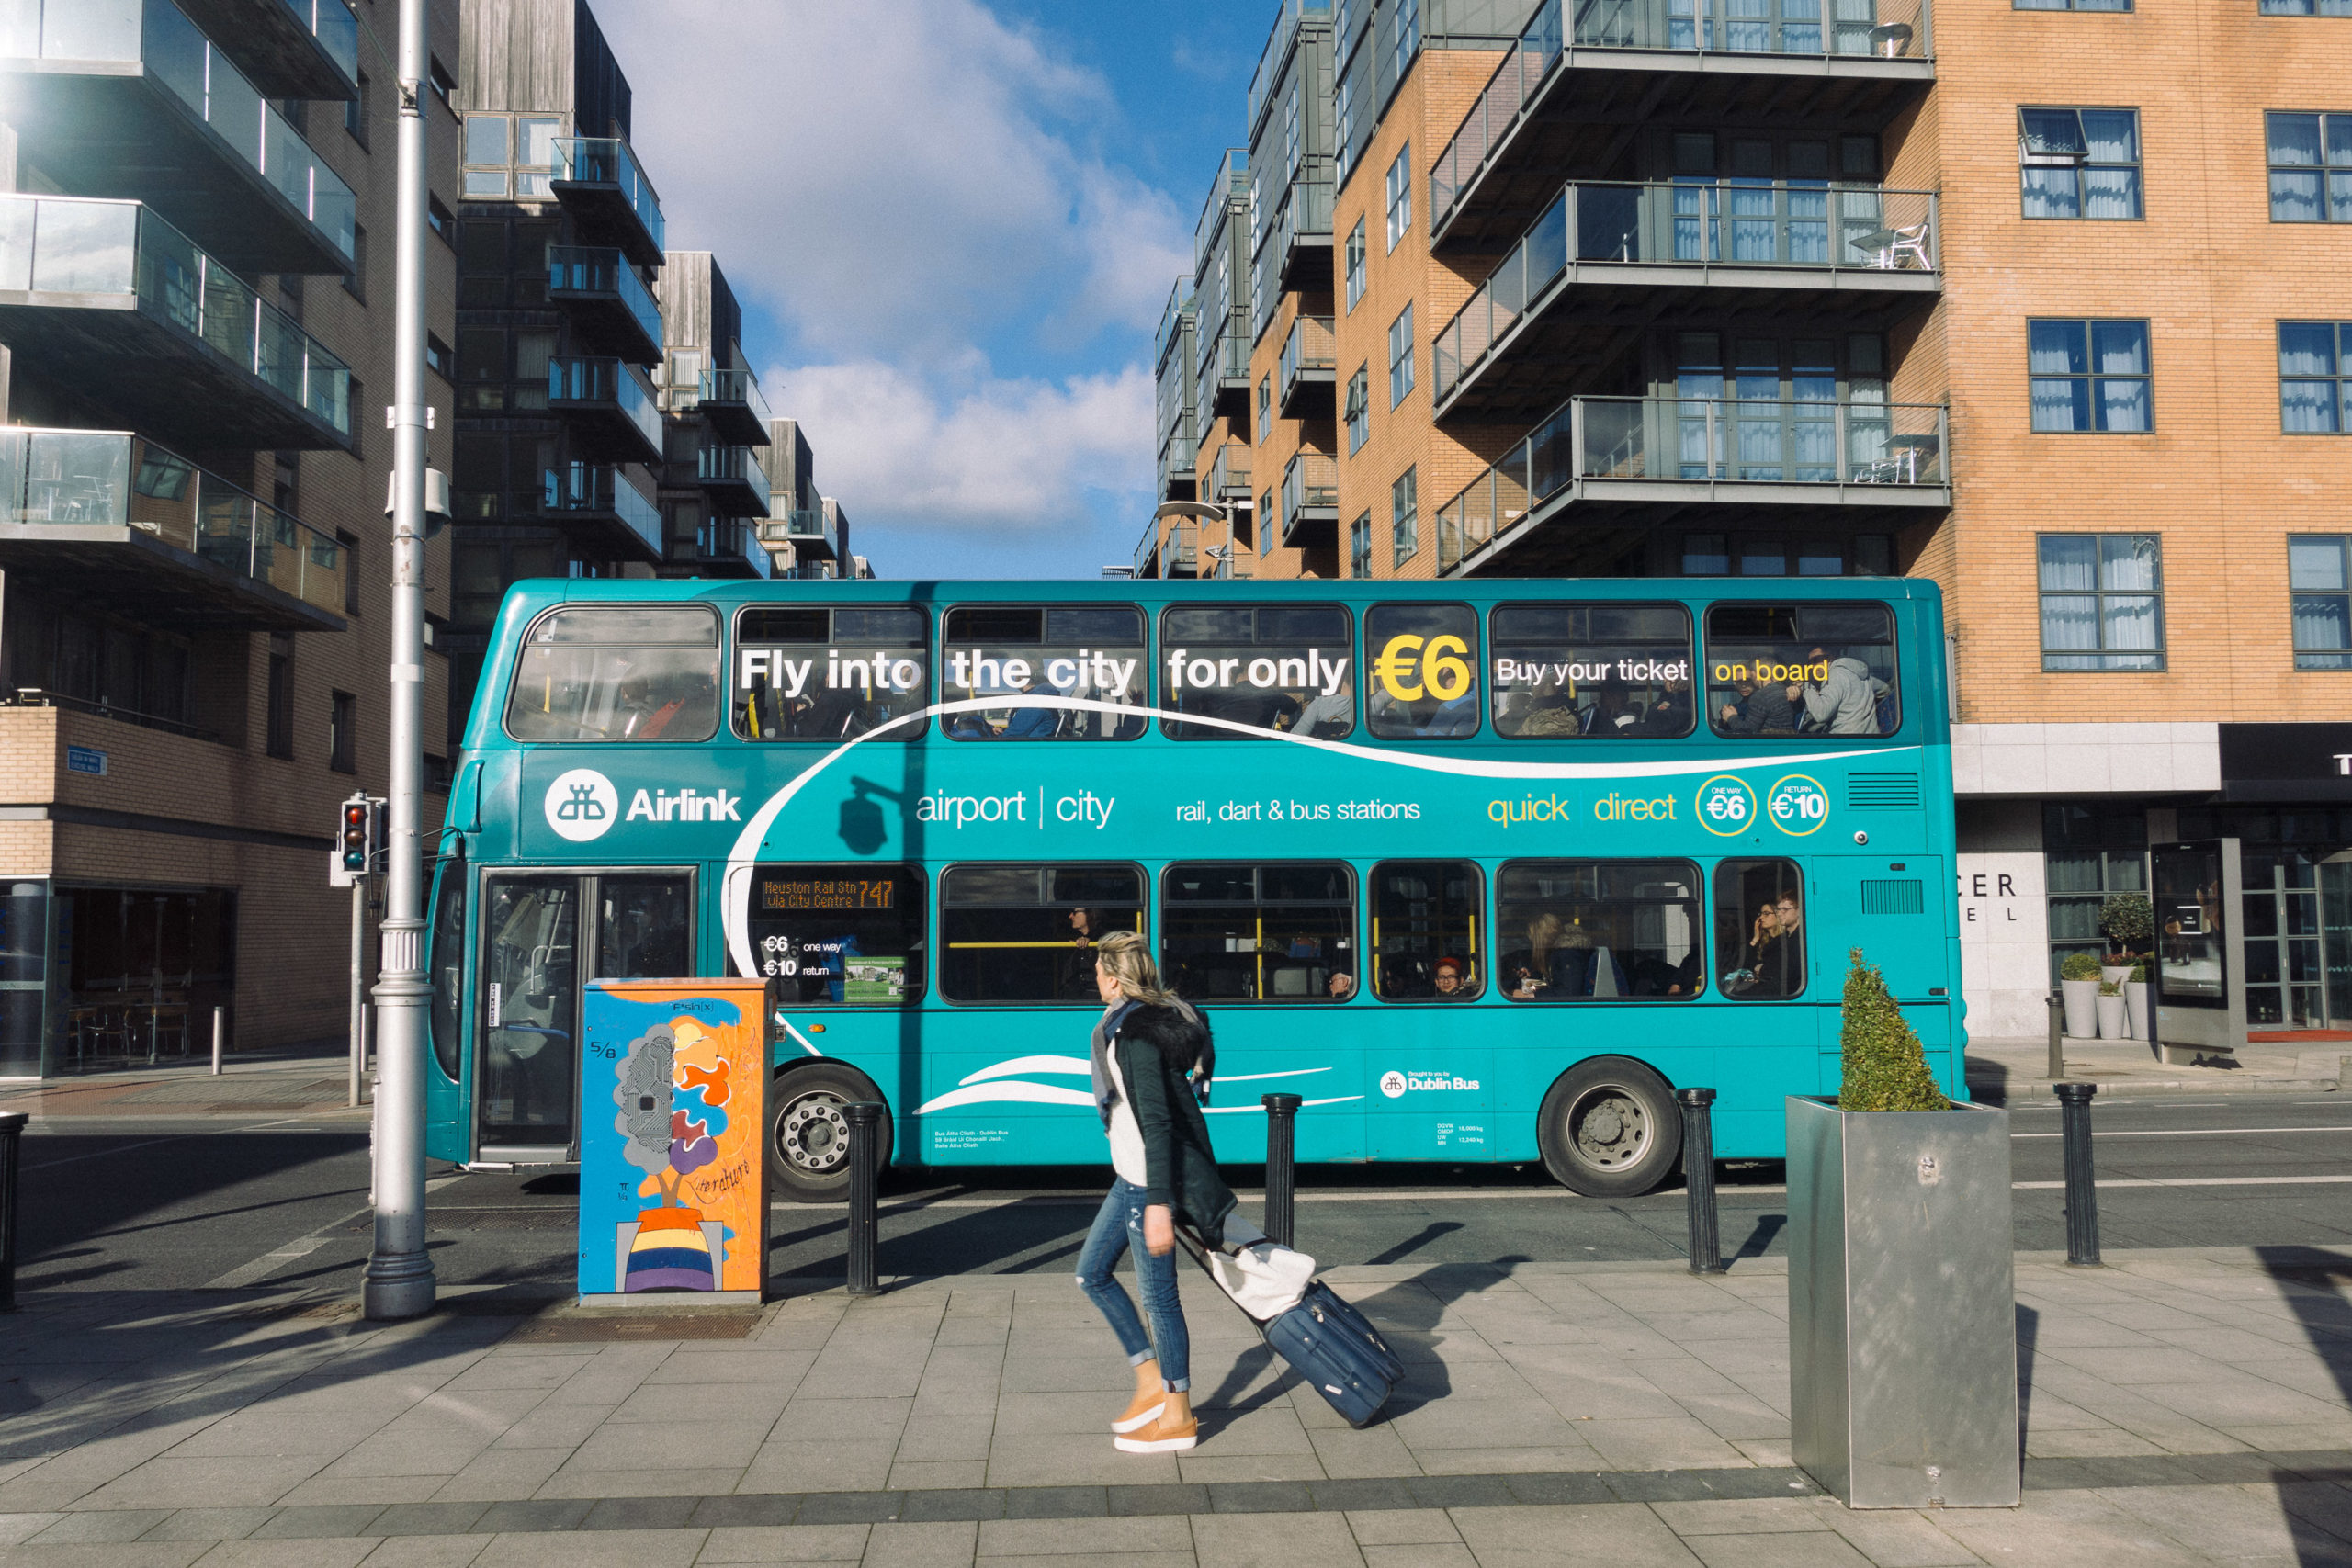 Airlink Bus in Dublin